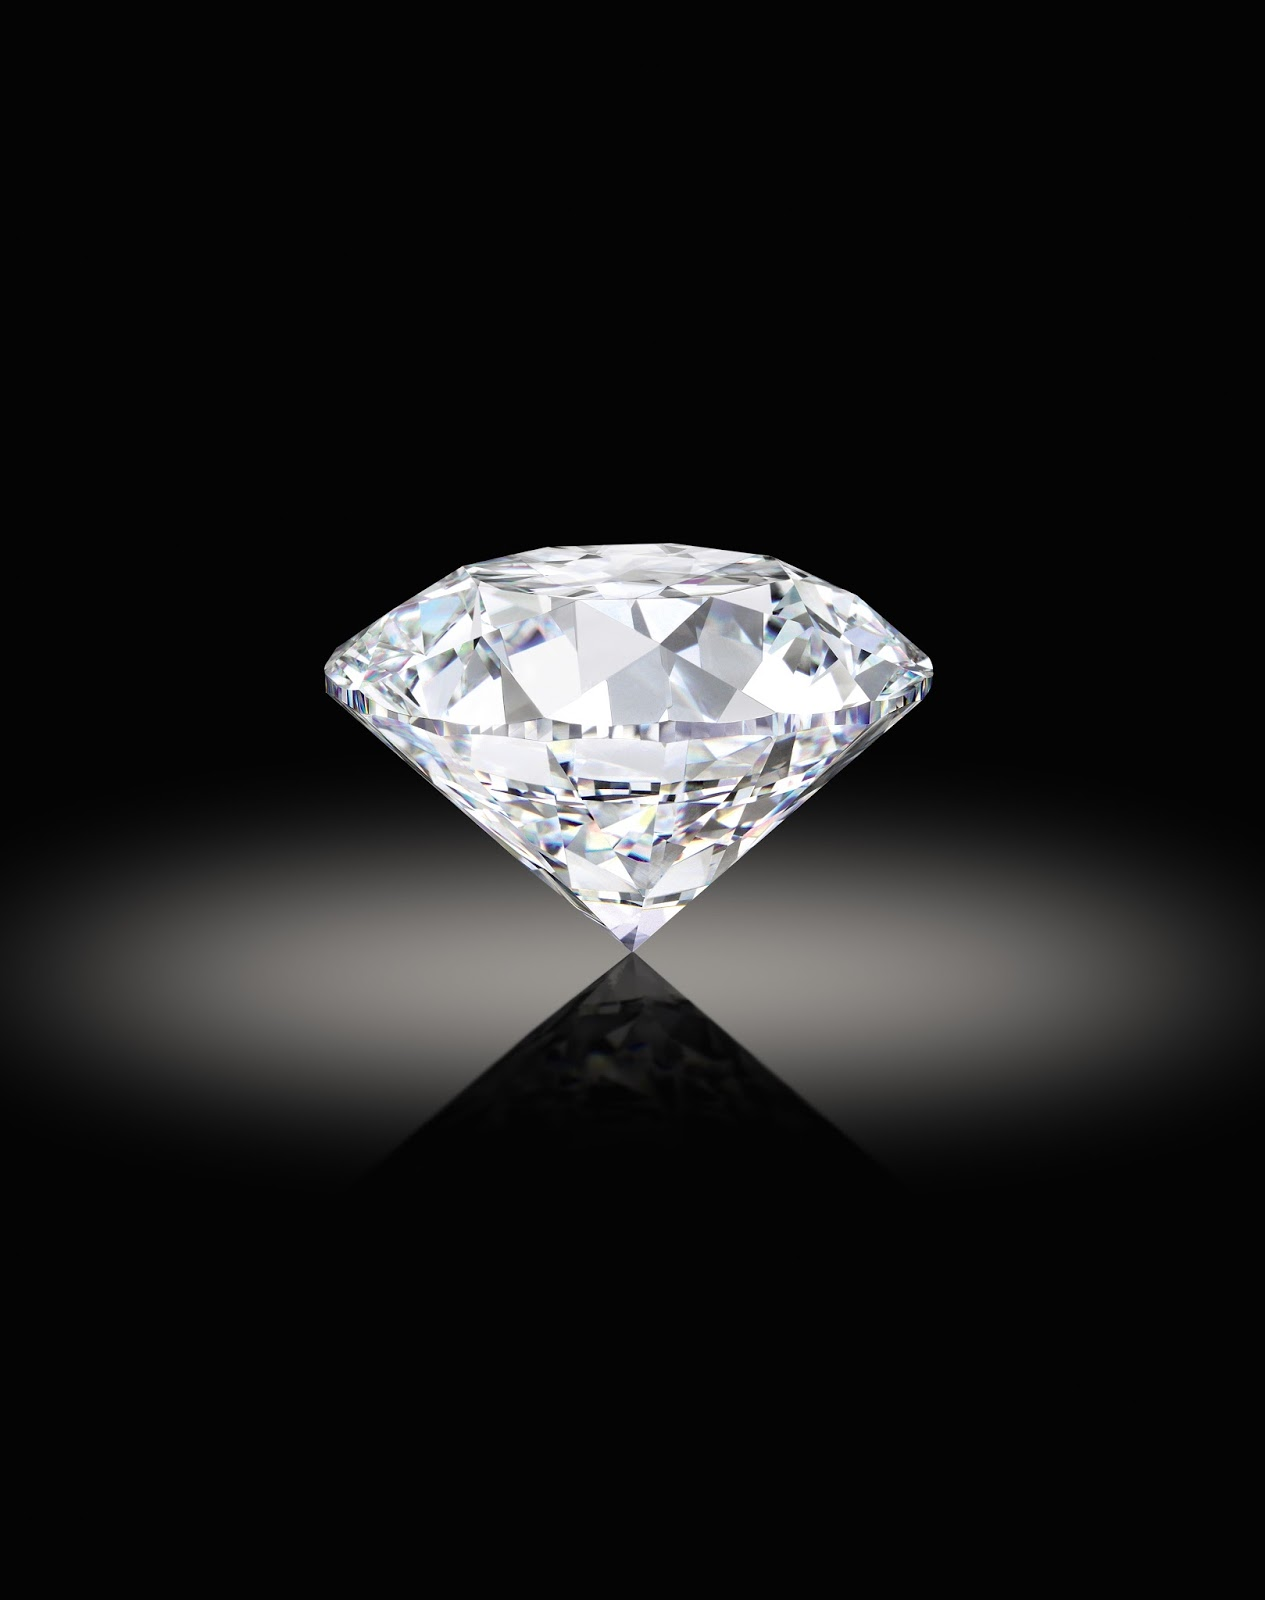 for jewel cubic polished market diamond back prospects as gem bounces consumption news chinese zirconia en upbeat